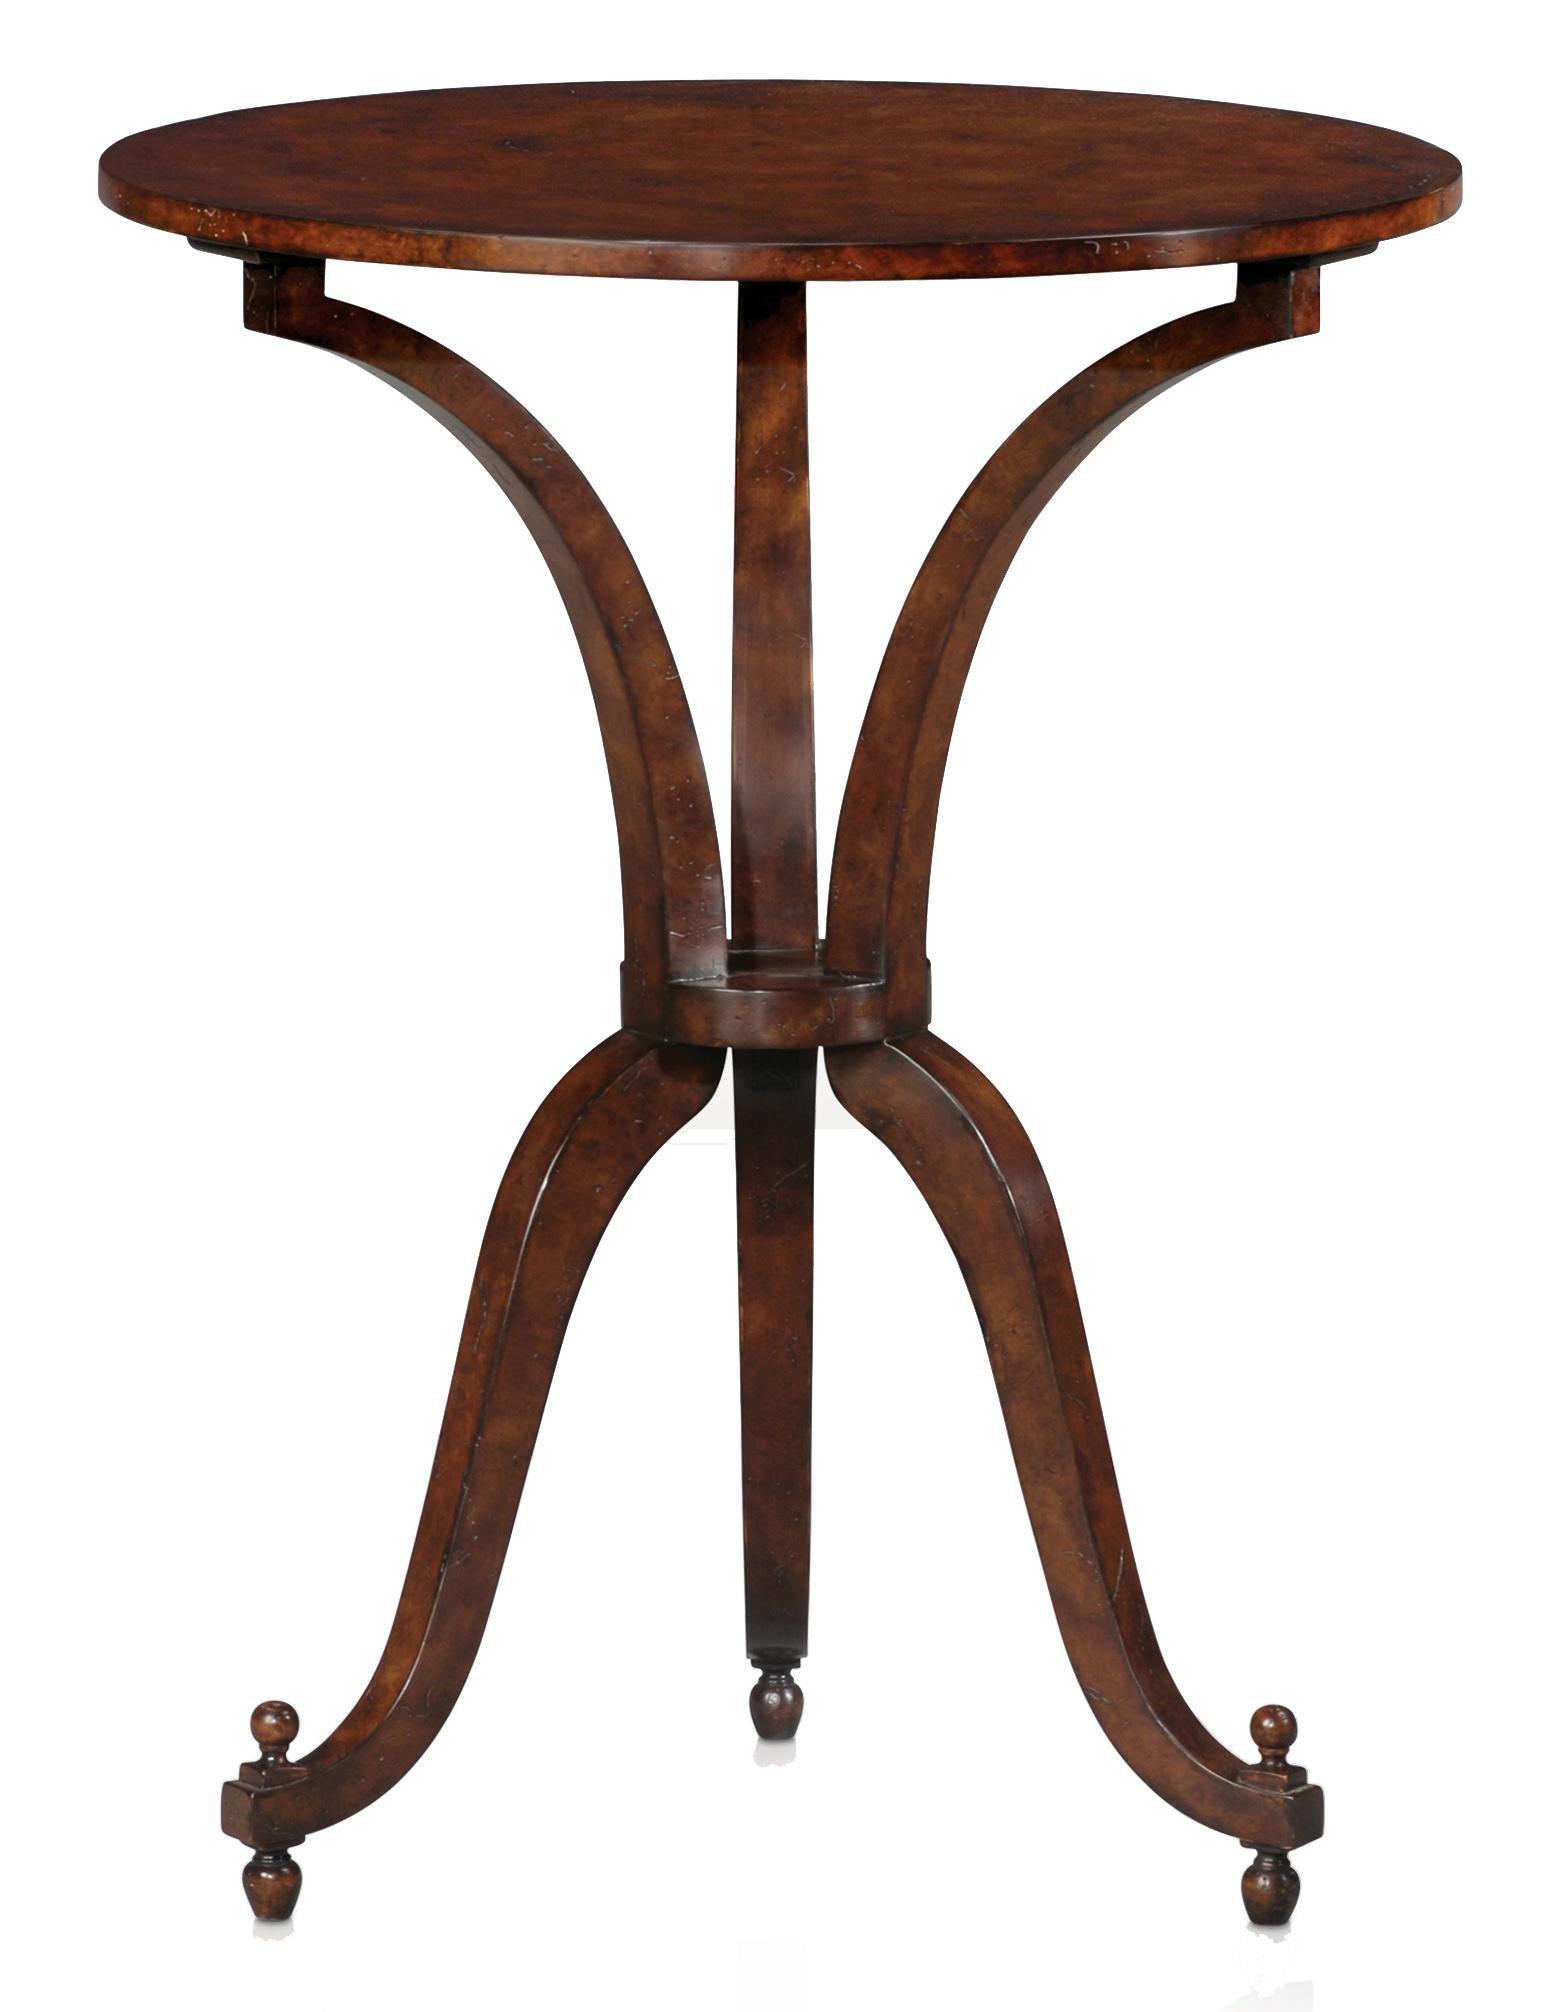 Classic yet Casual Round Table by Theodore Alexander at Baer's Furniture